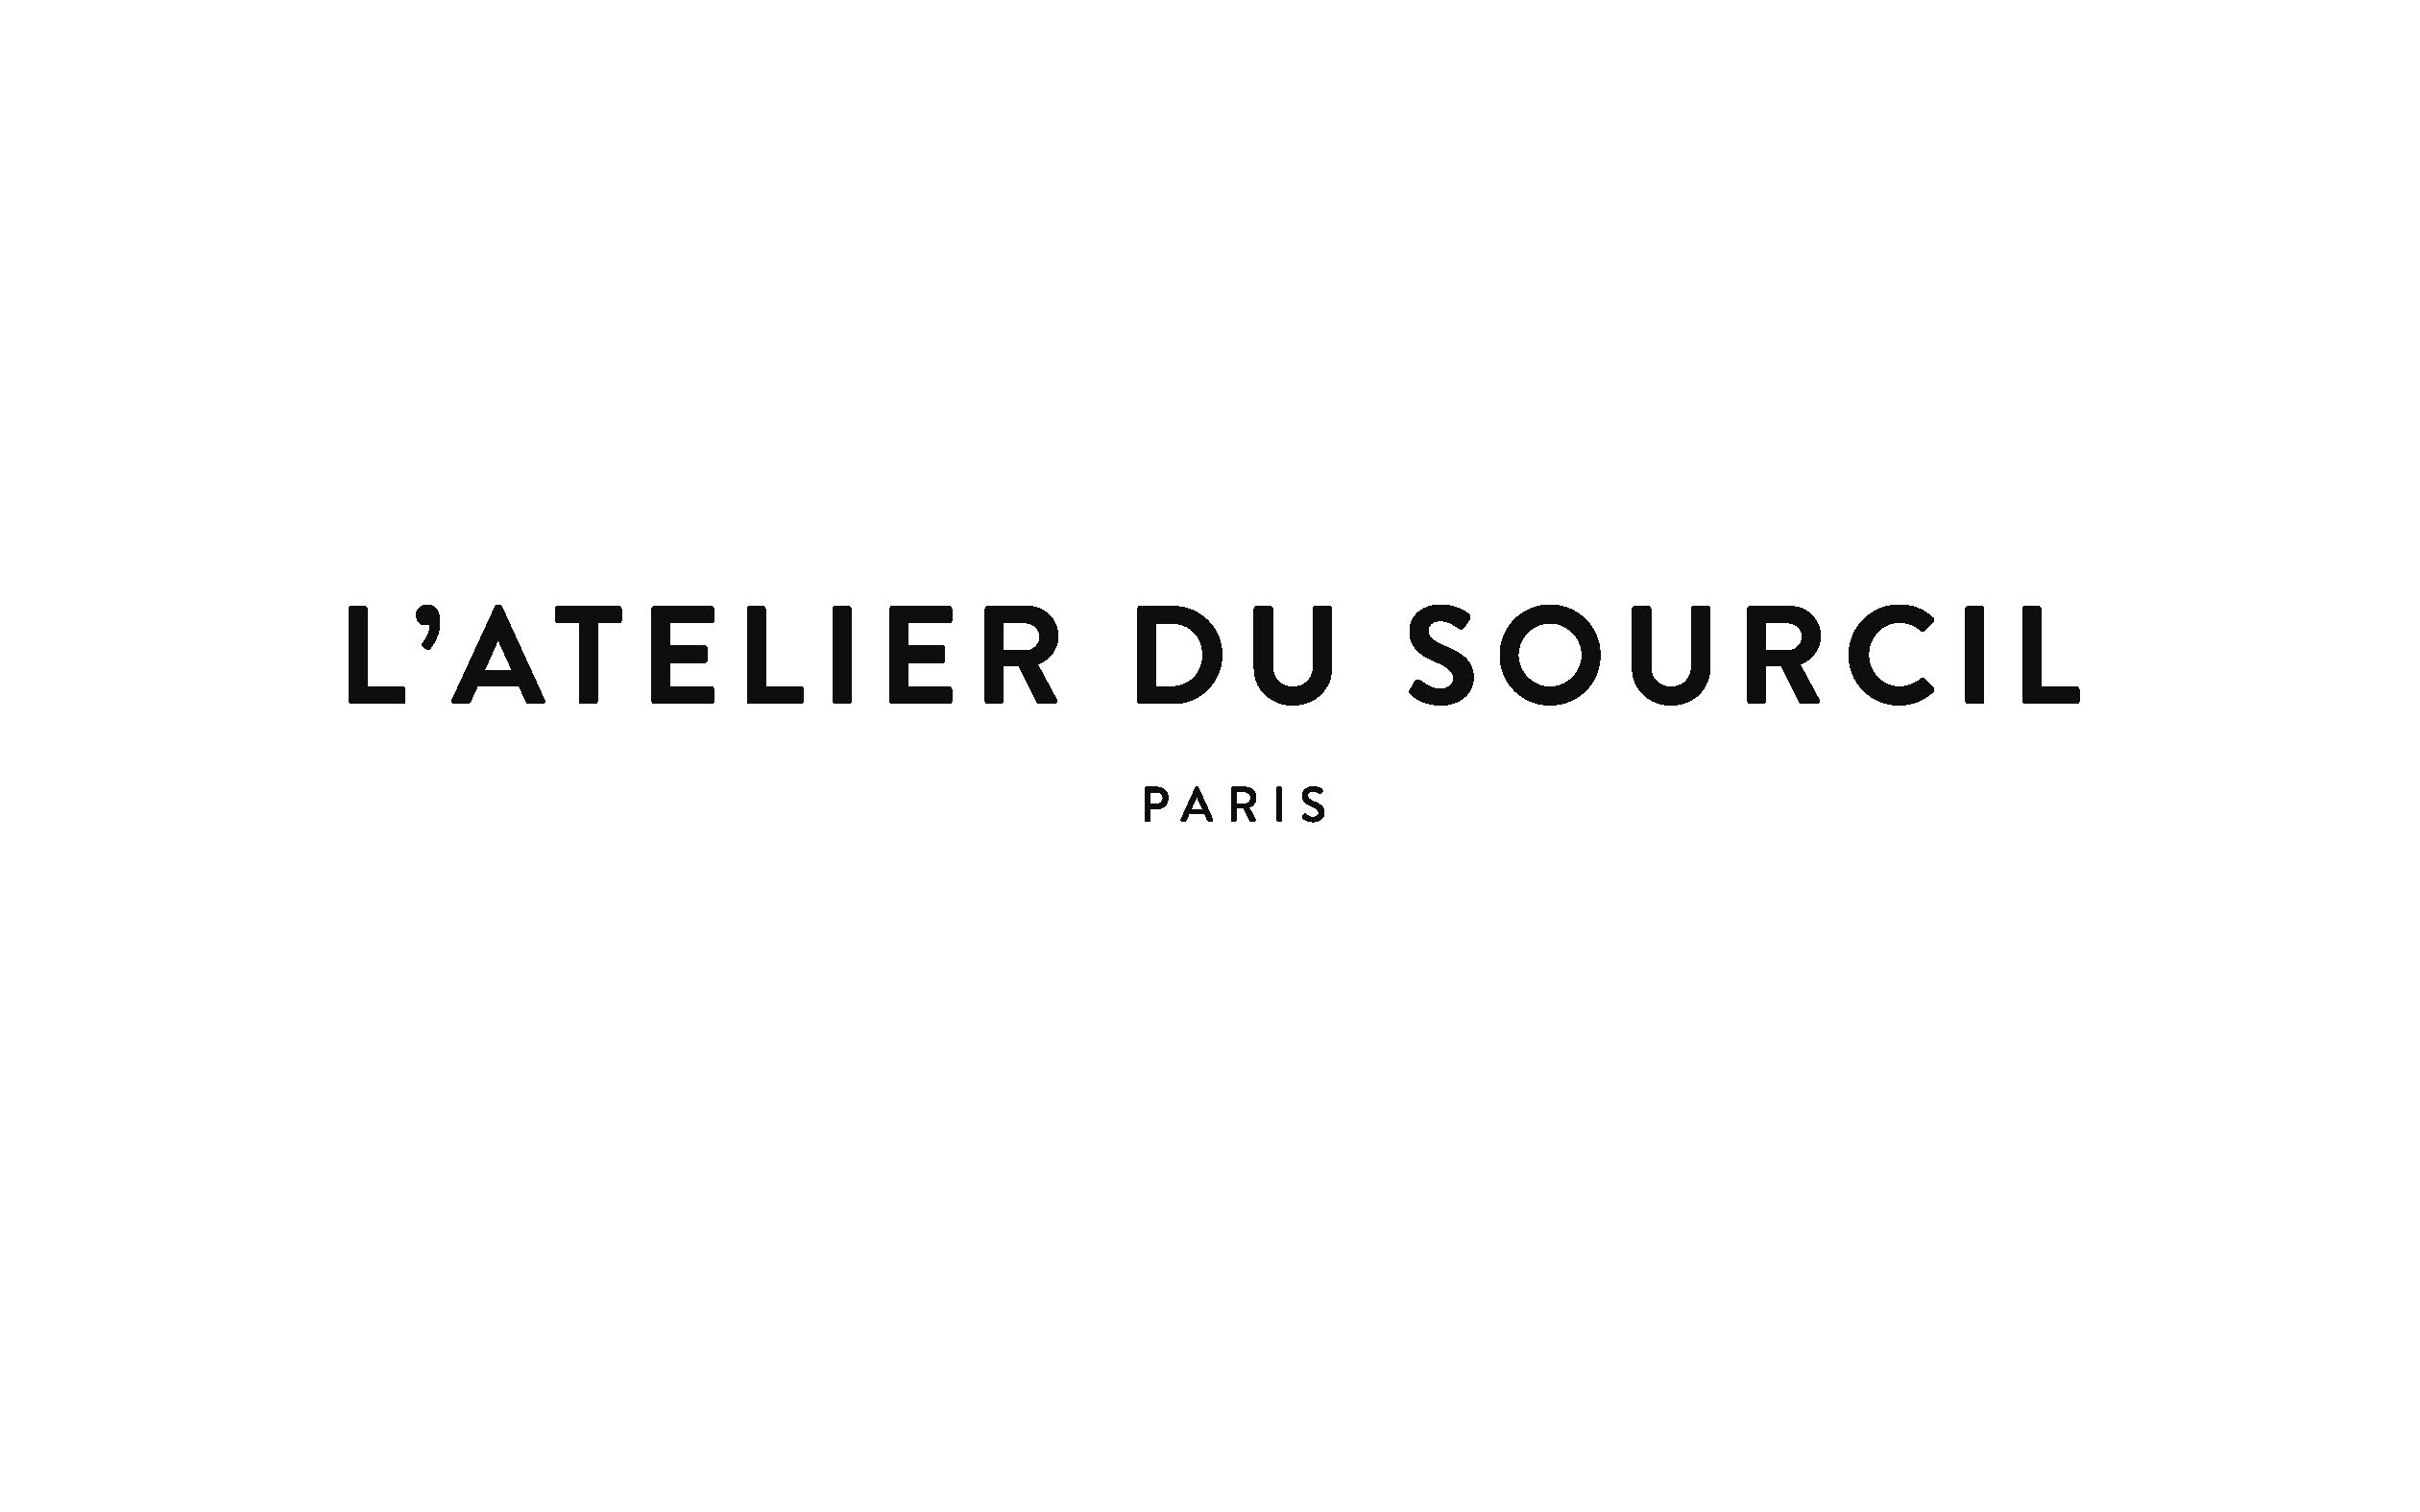 L'Atelier du Sourcil - Paris 5